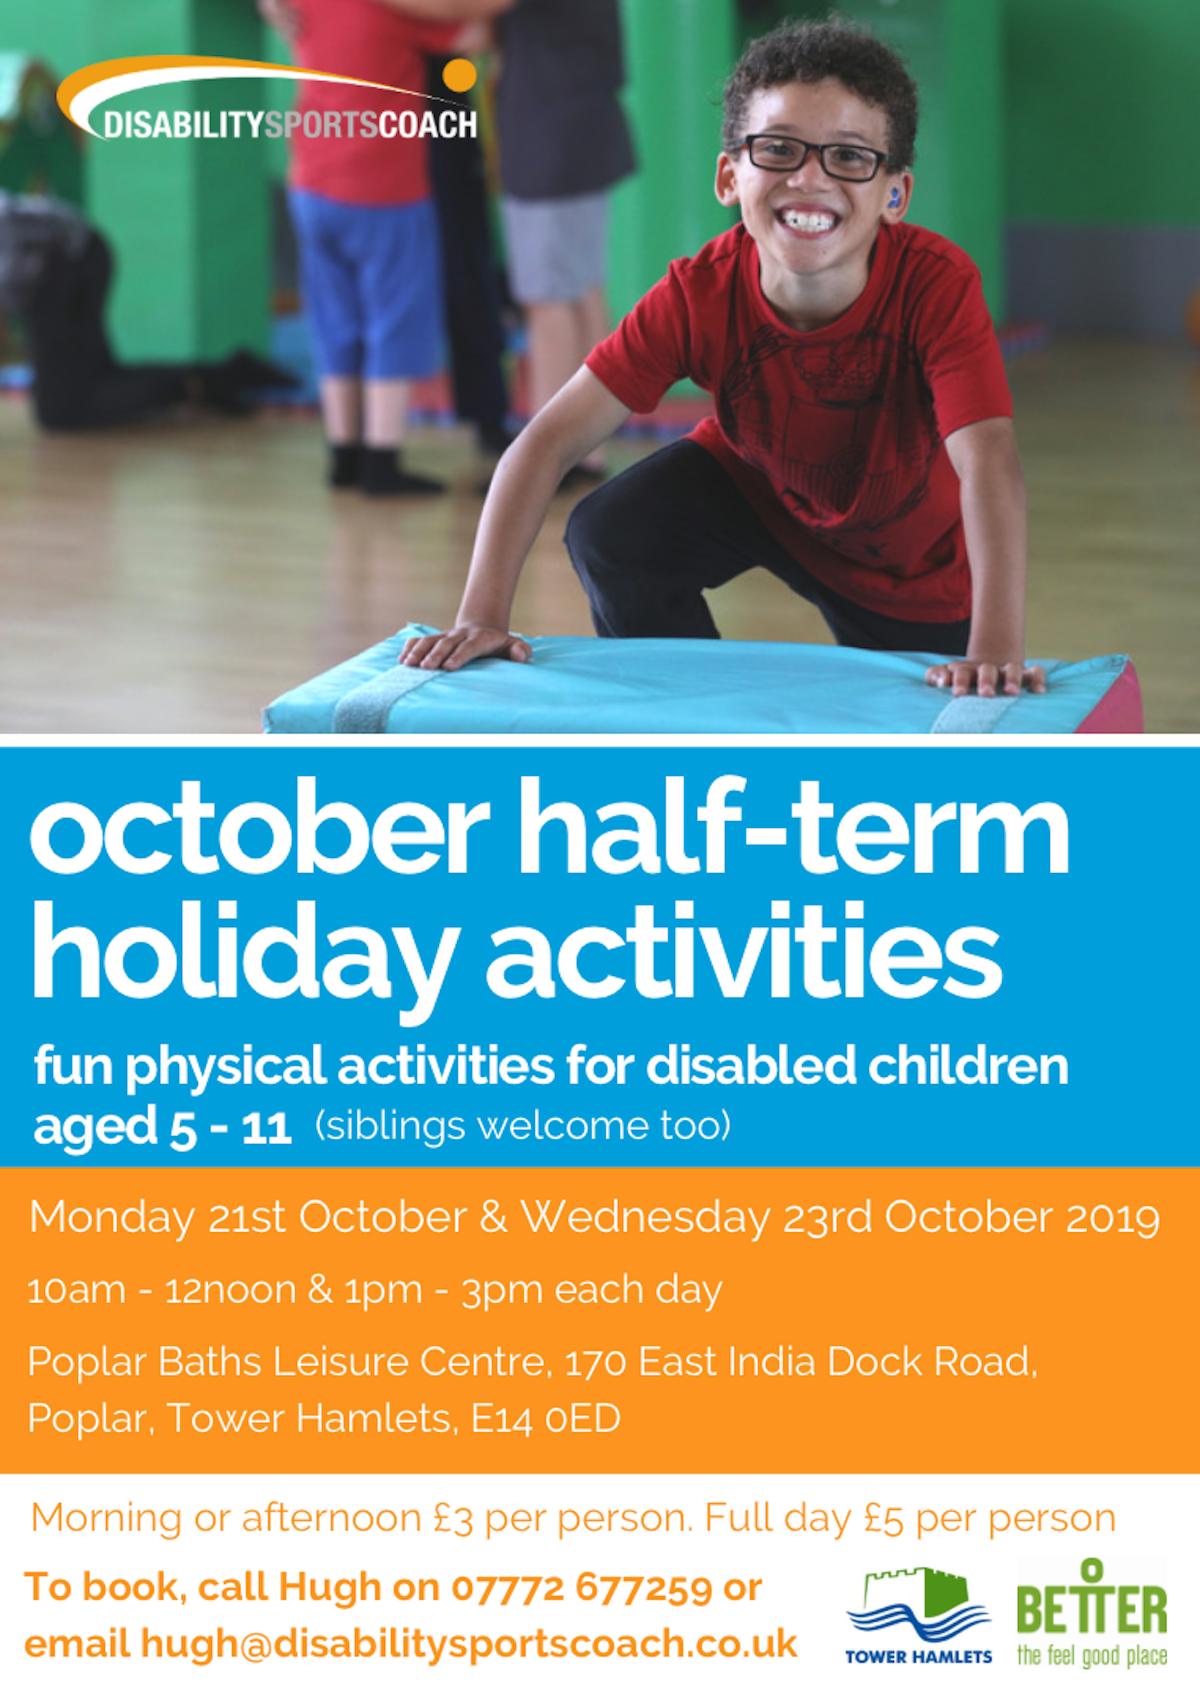 Disability Sports Coach - Tower Hamlets October Half Term Holiday activities for all disabled people